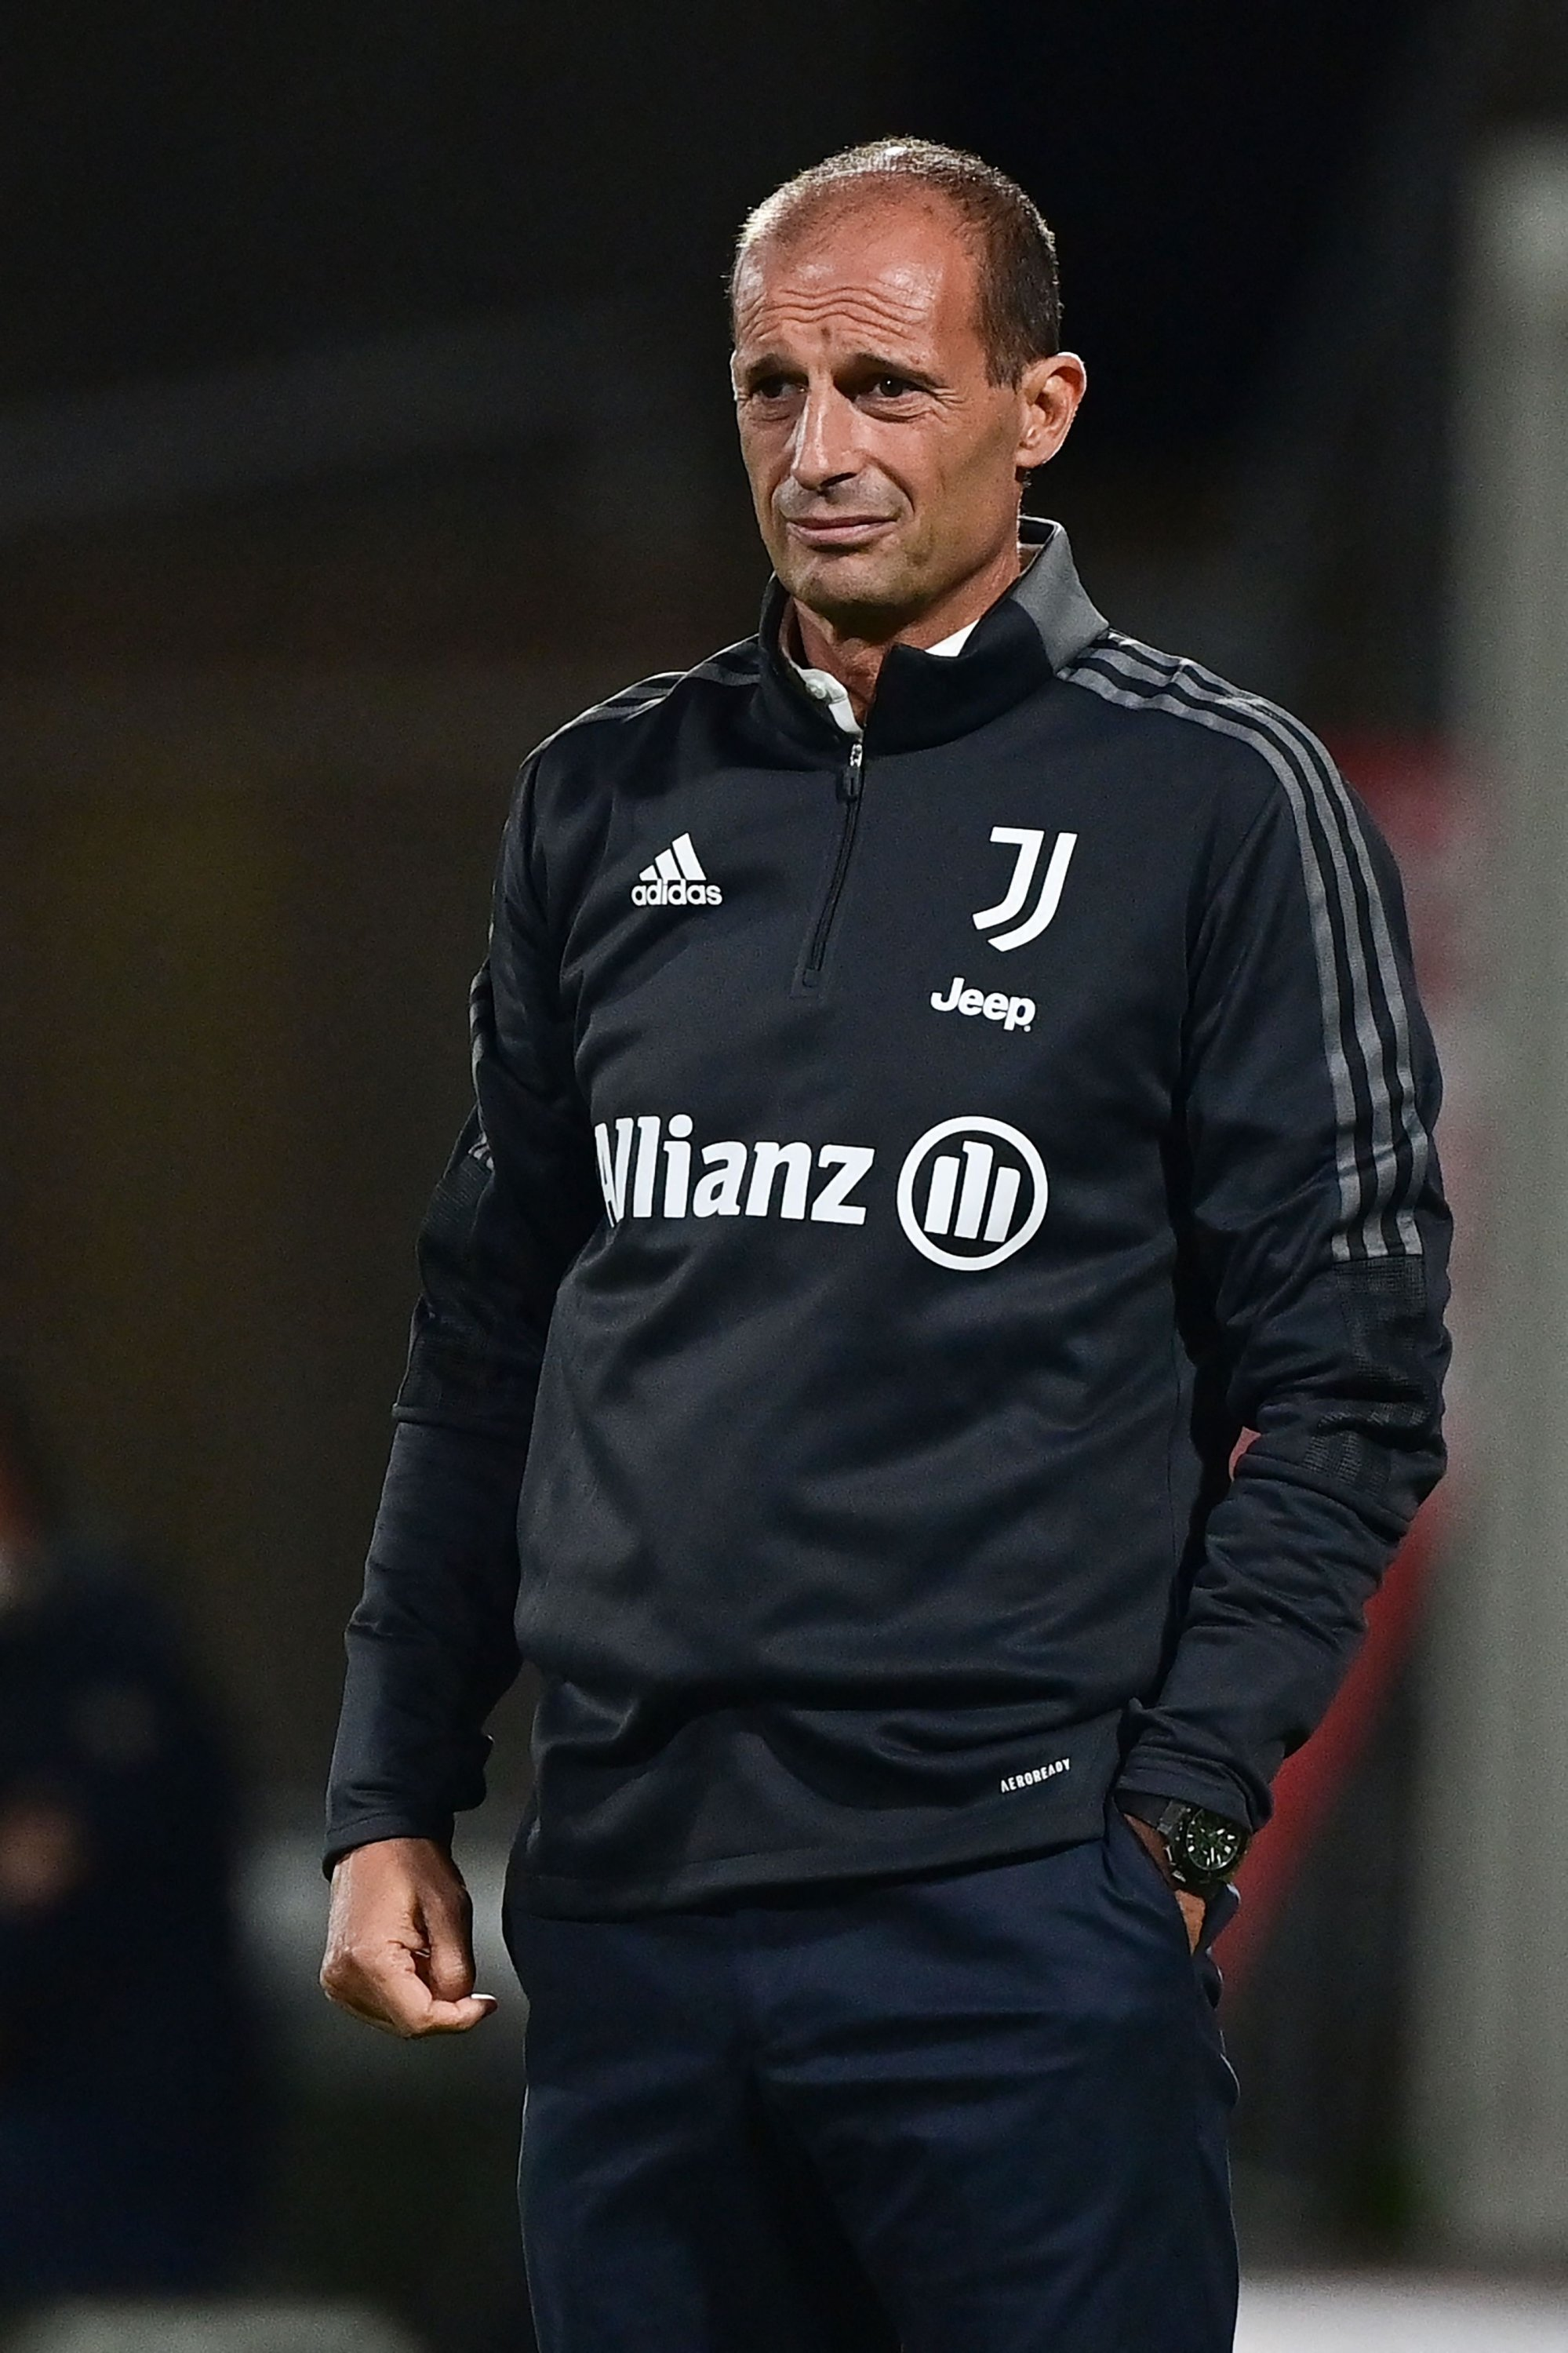 Juventus' Italian coach Massimiliano Allegri reacts during a friendly match against AC Monza at the U-Power Stadium in Monza, Italy, July 31, 2021. (AFP Photo)